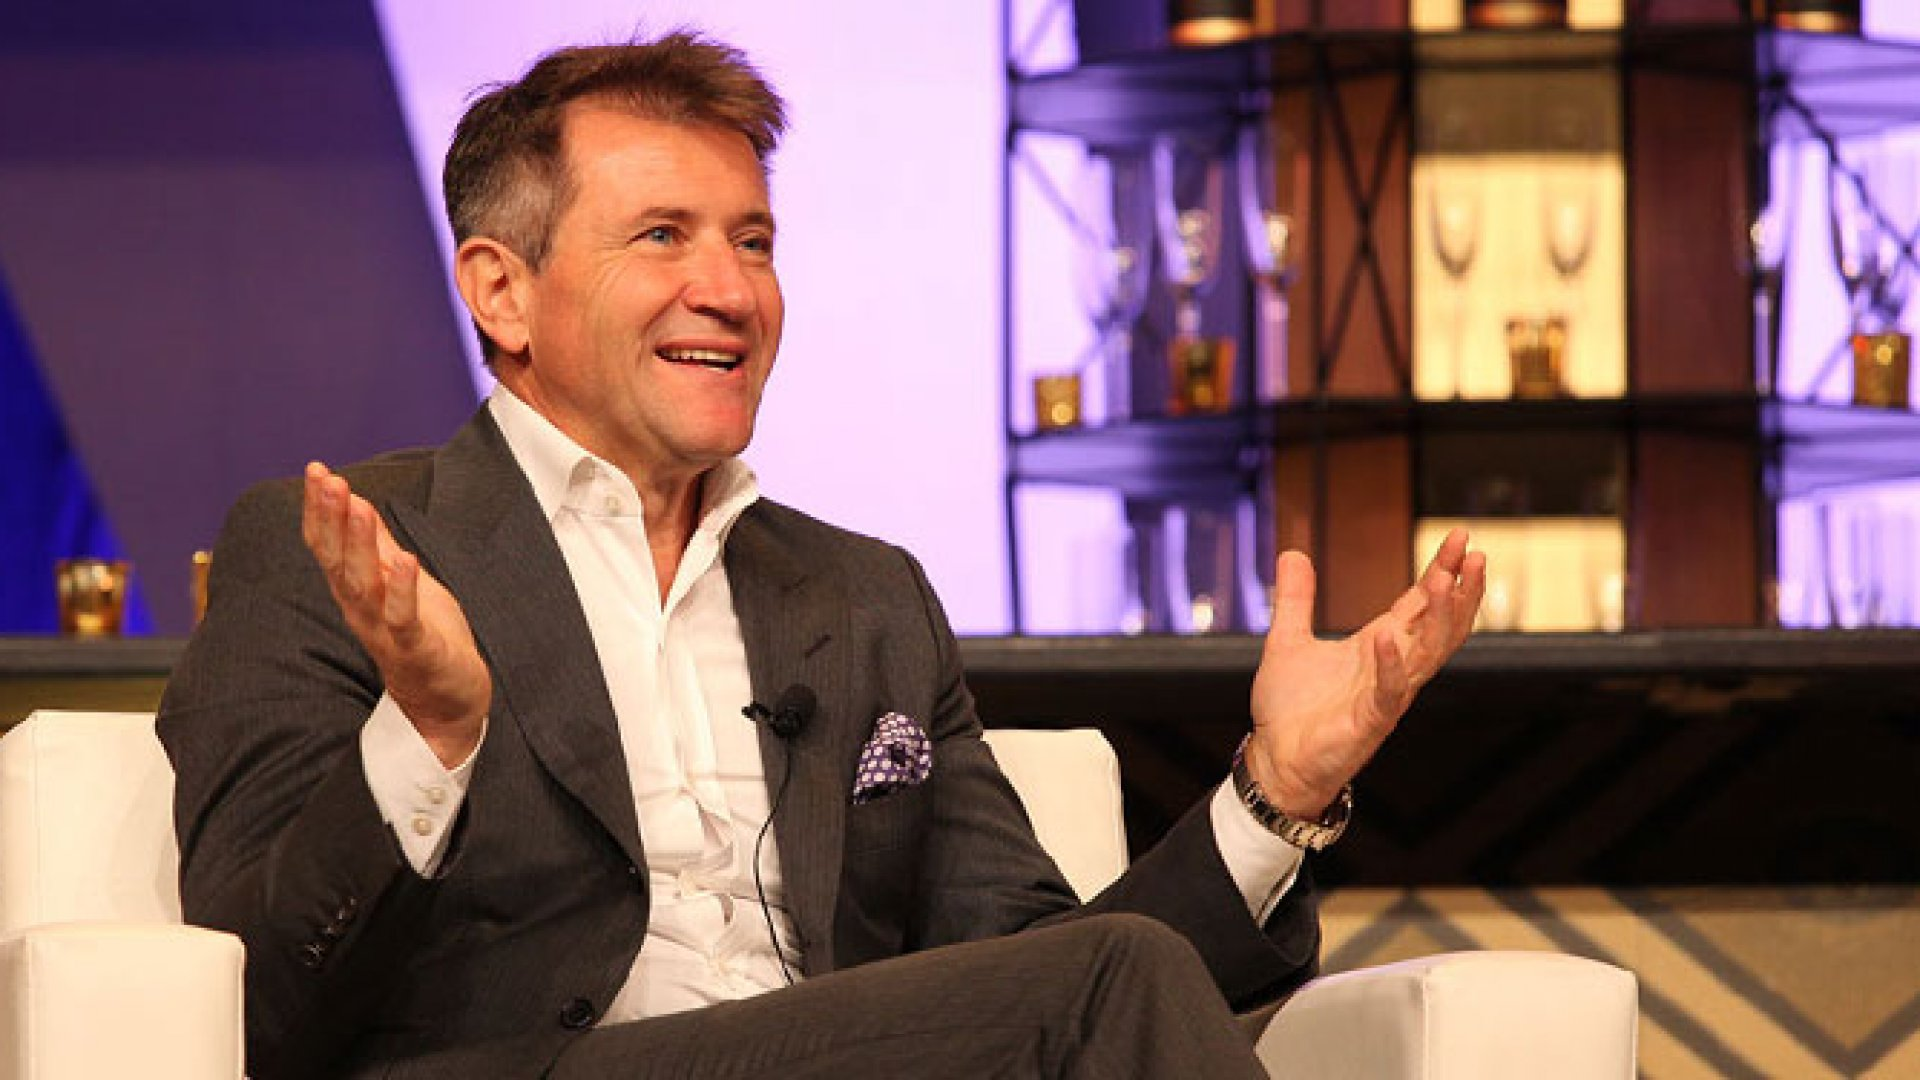 Shark Tank's Robert Herjavec Shares the Cybersecurity Trends You Need to Know About